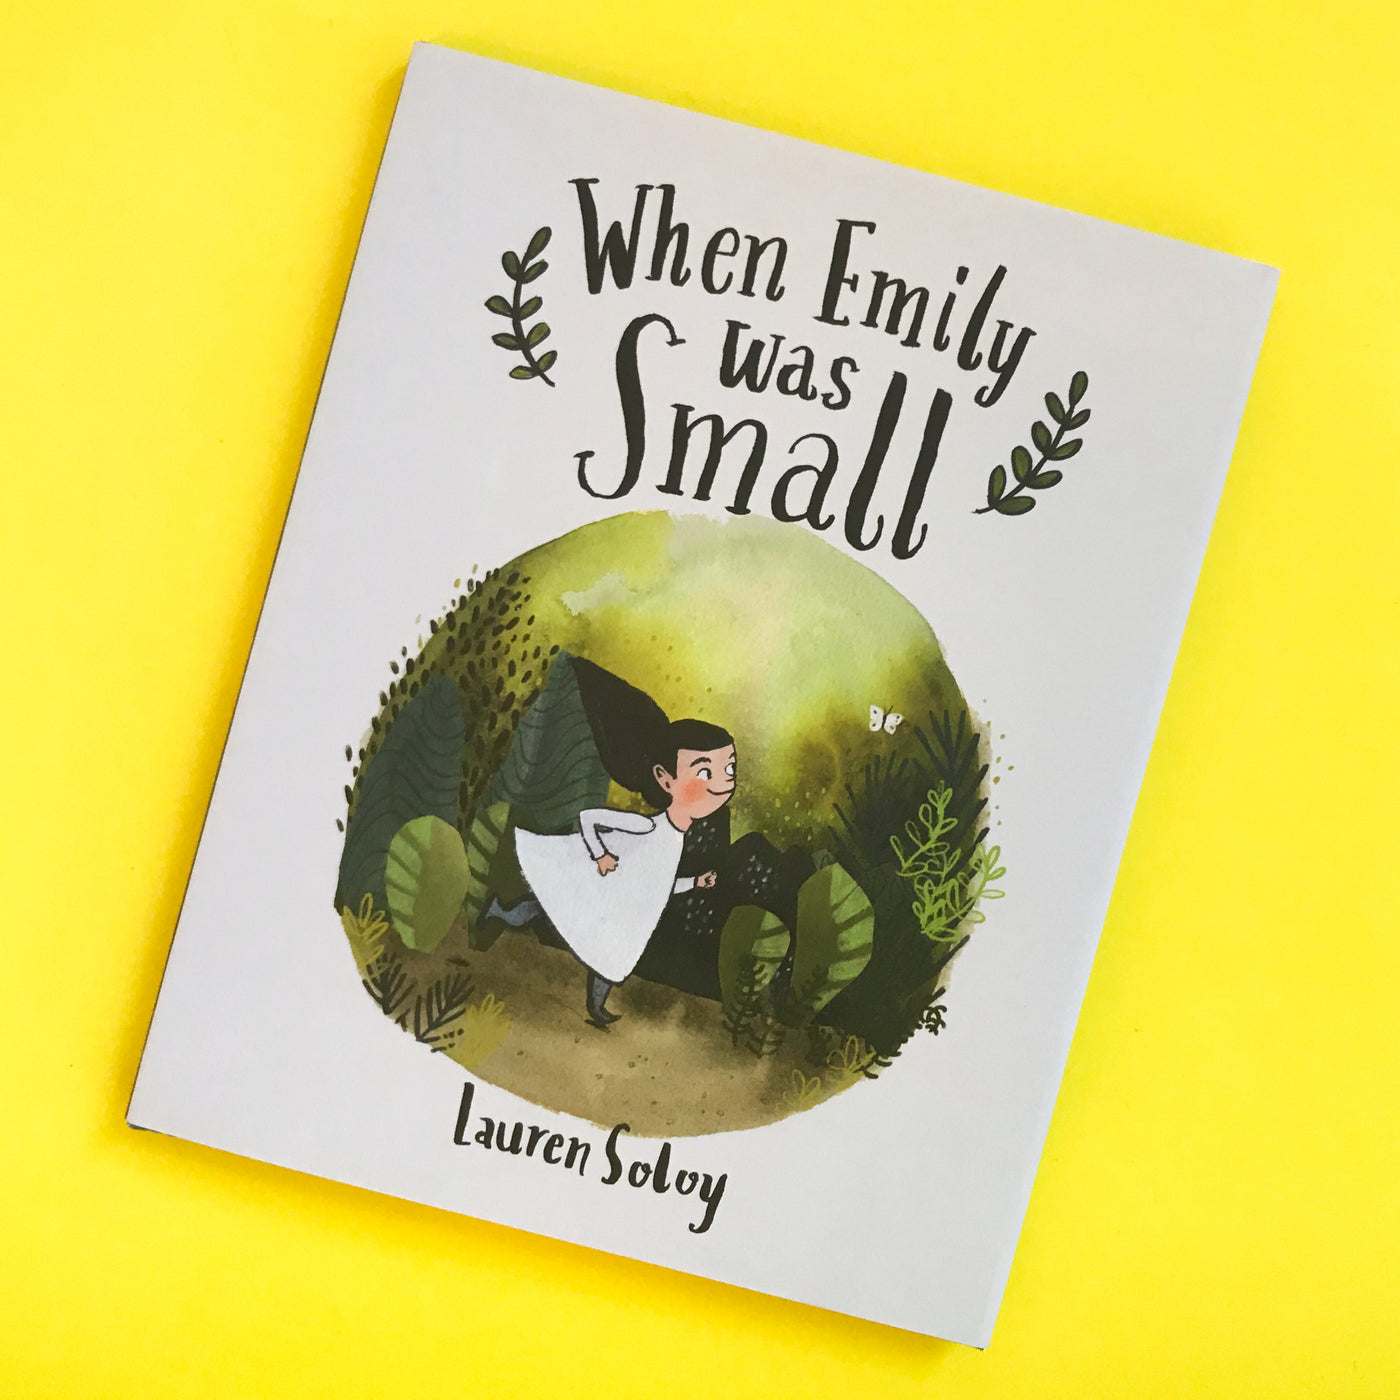 When Emily Was Small by Lauren Soloy